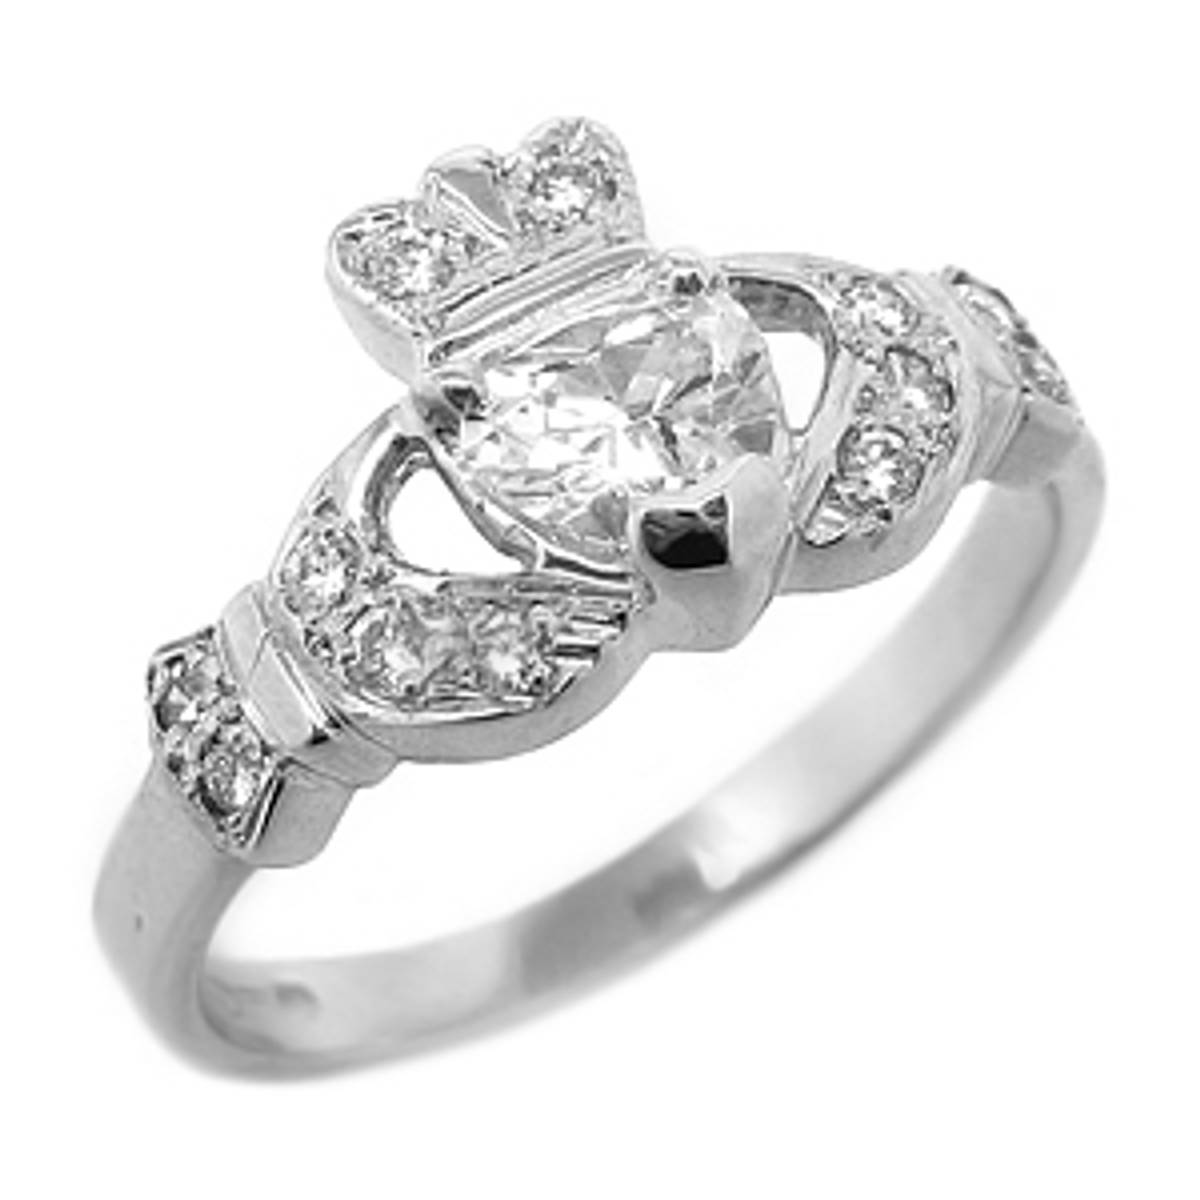 14 carat white gold 0.45cts/0.12cts diamonds claddagh engagement ring